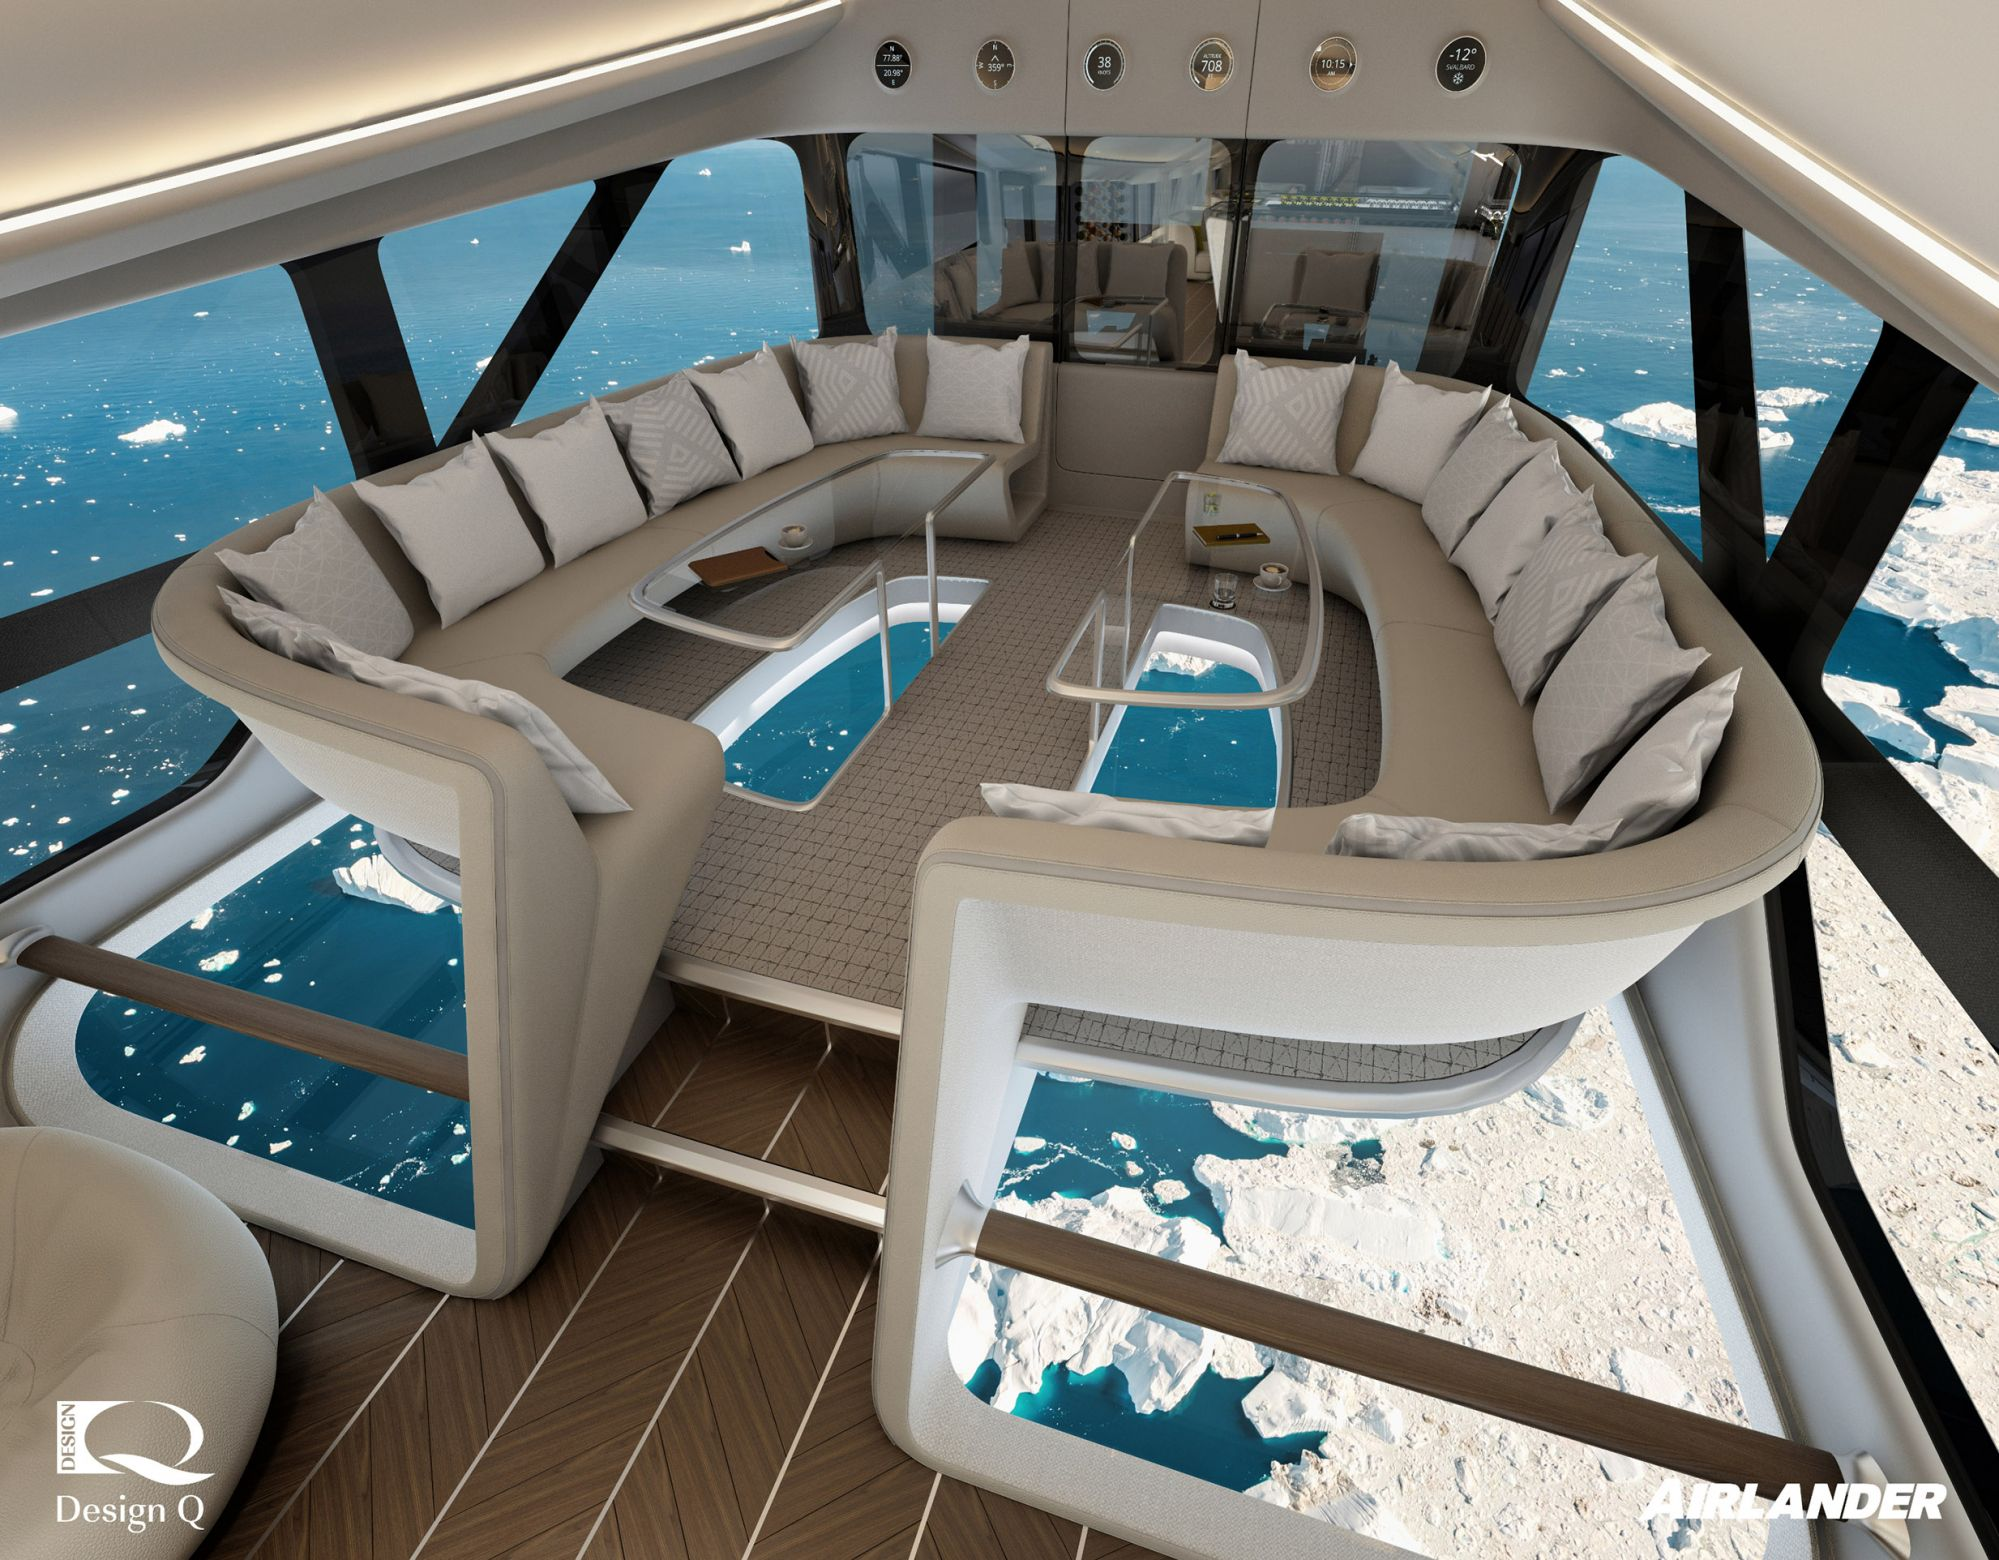 This Luxury Aircraft Has Glass-bottom Floors And Ensuite Bedrooms